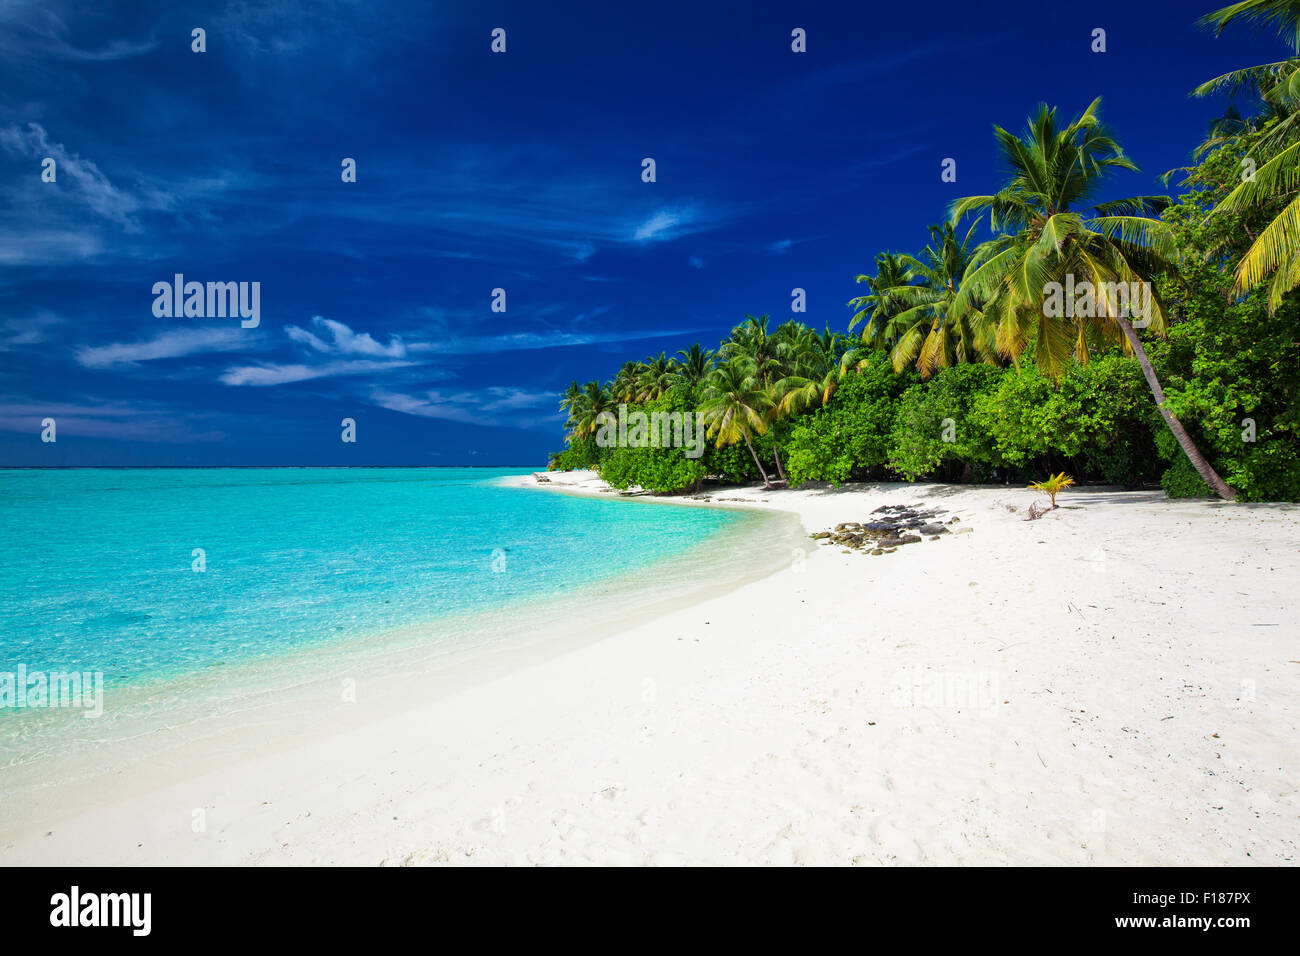 Amazing beach on a tropical island with palm trees overhanging lagoon - Stock Image